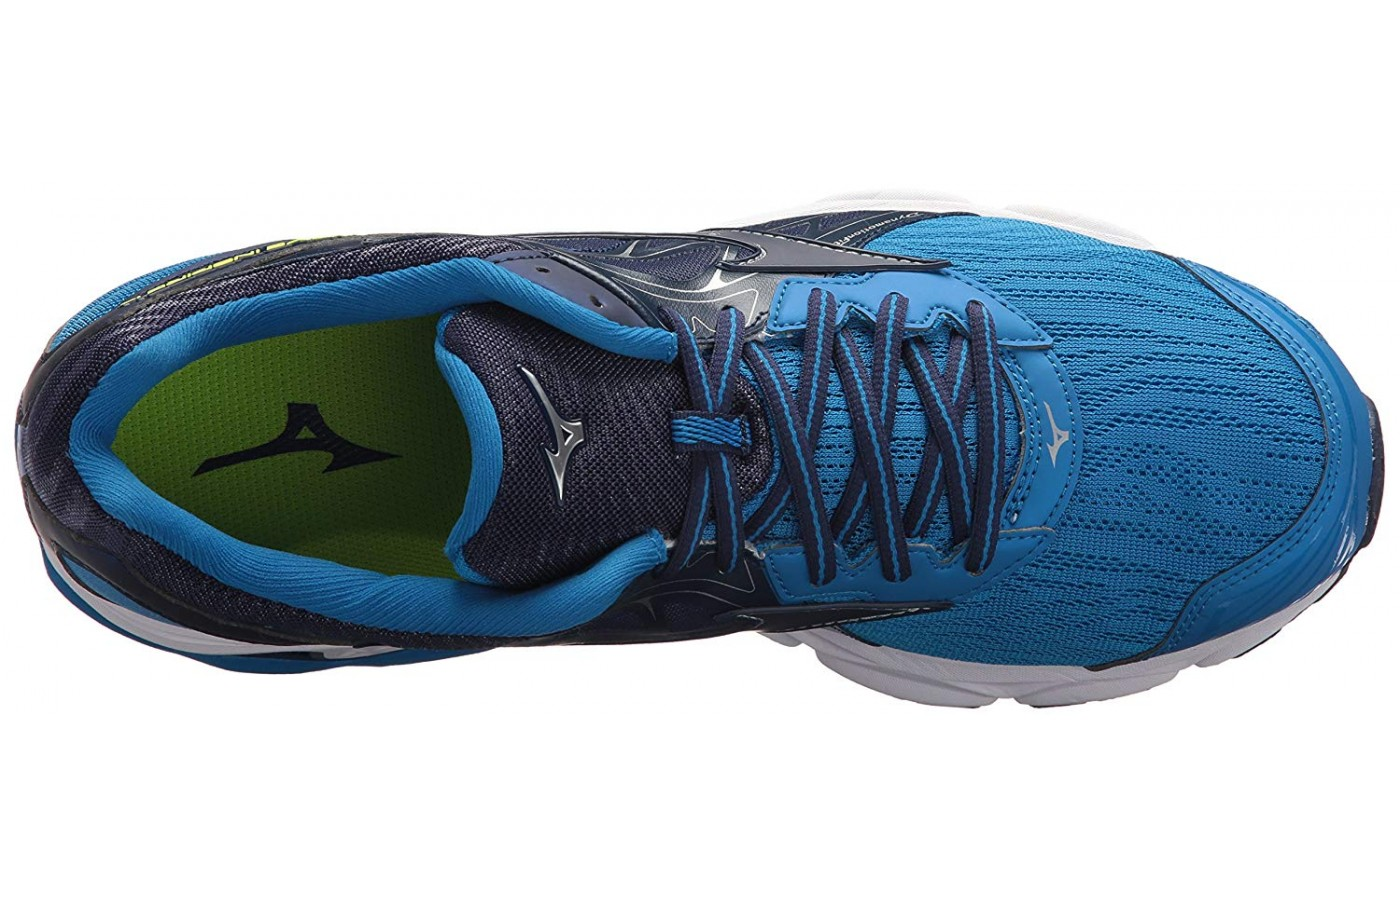 The top view of the Mizuno Wave Inspire 14